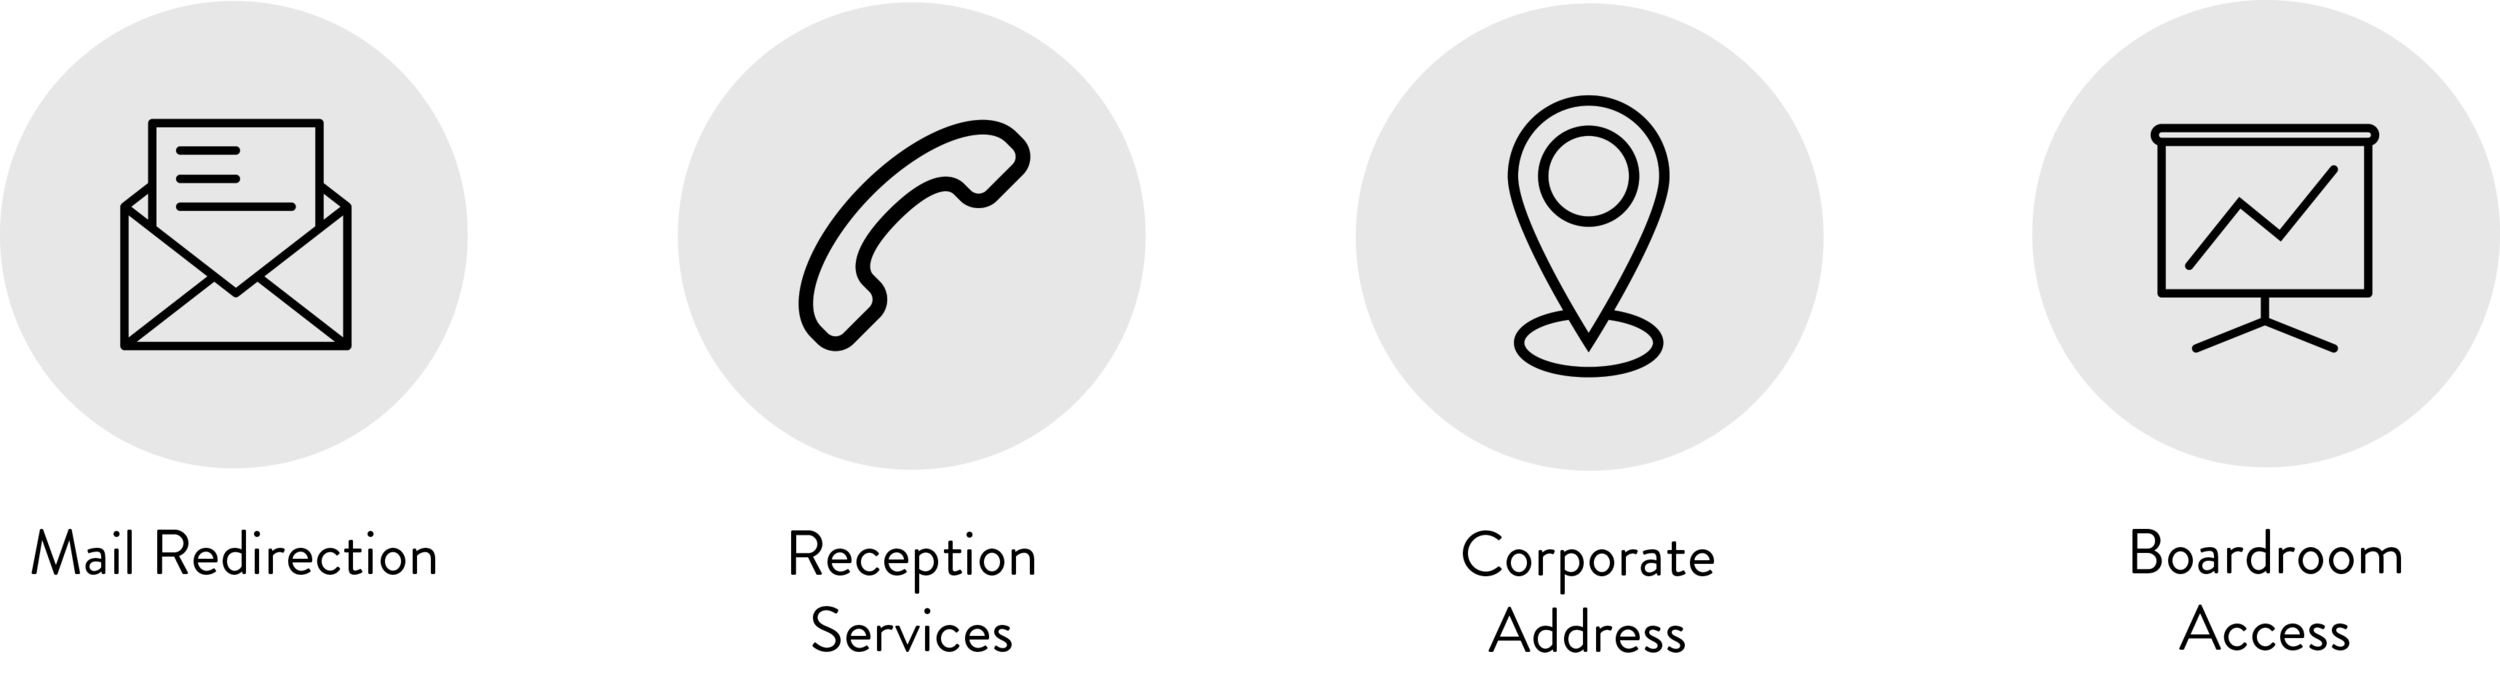 4-x-Icons-_2.png